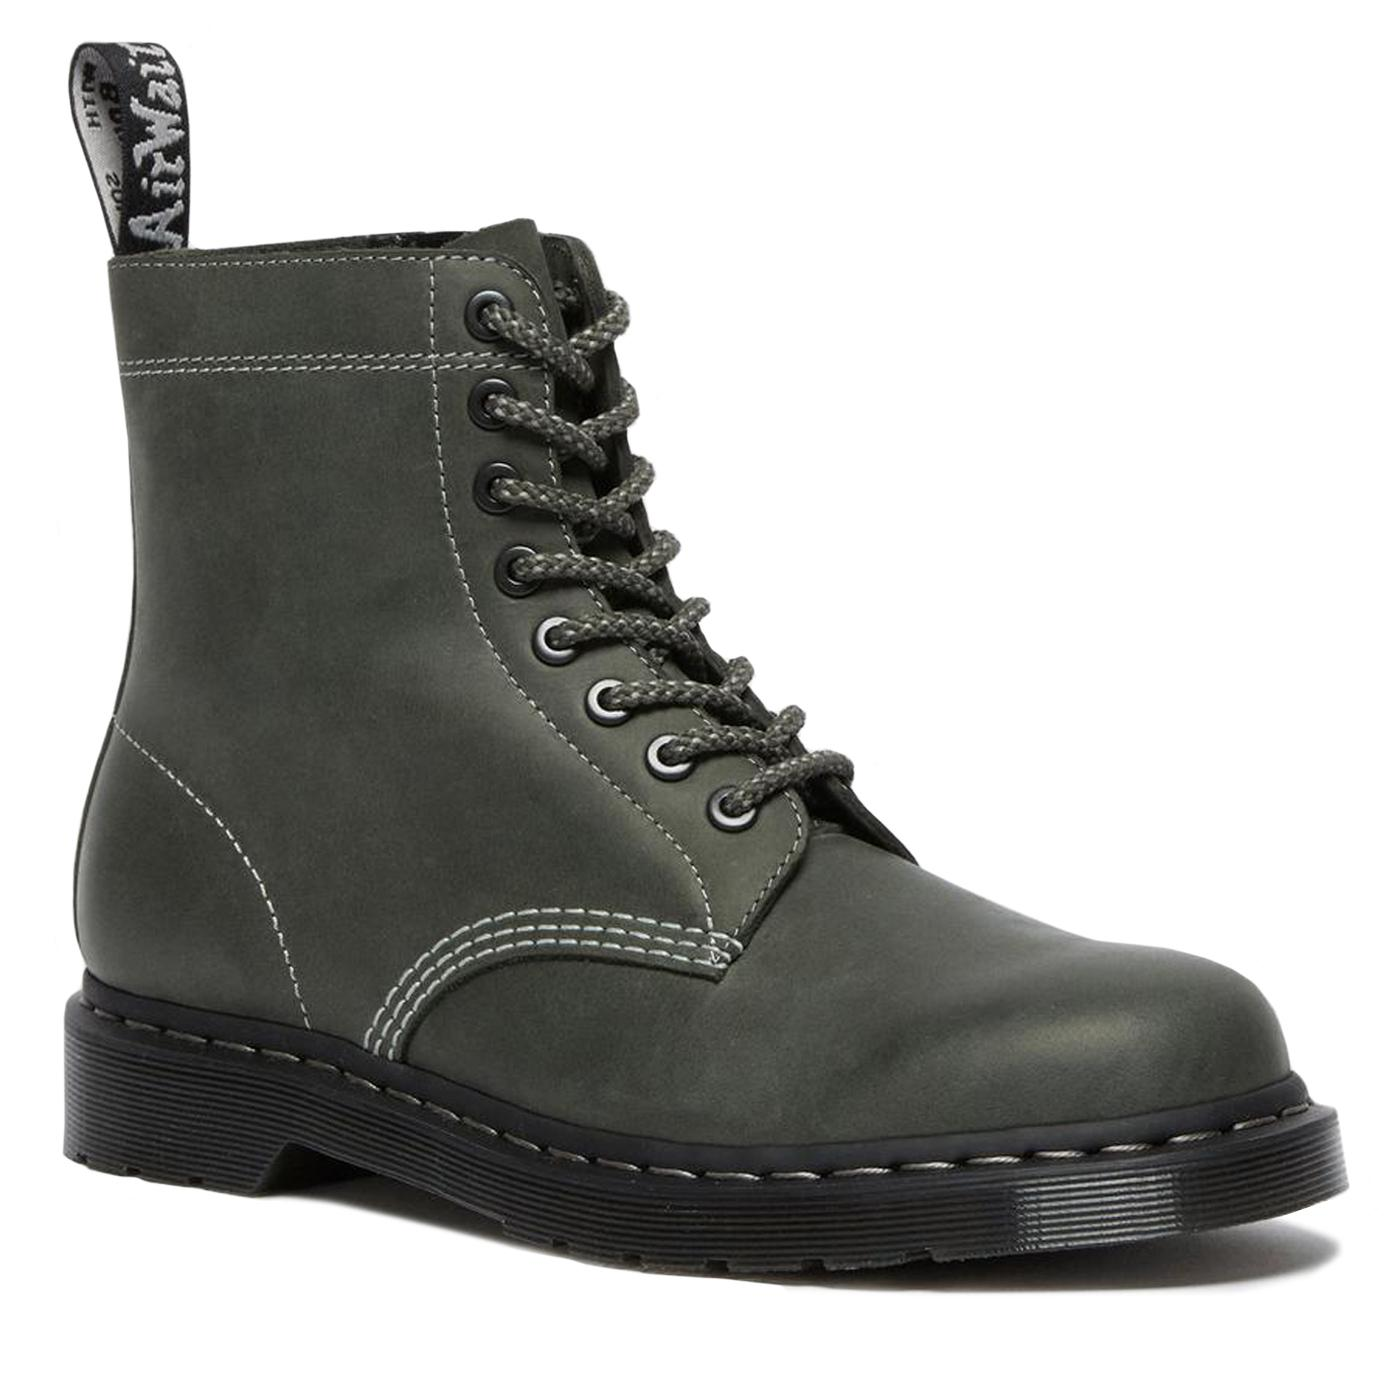 DR MARTENS 1460 Pascal Zipped Boots (Ivy Green)